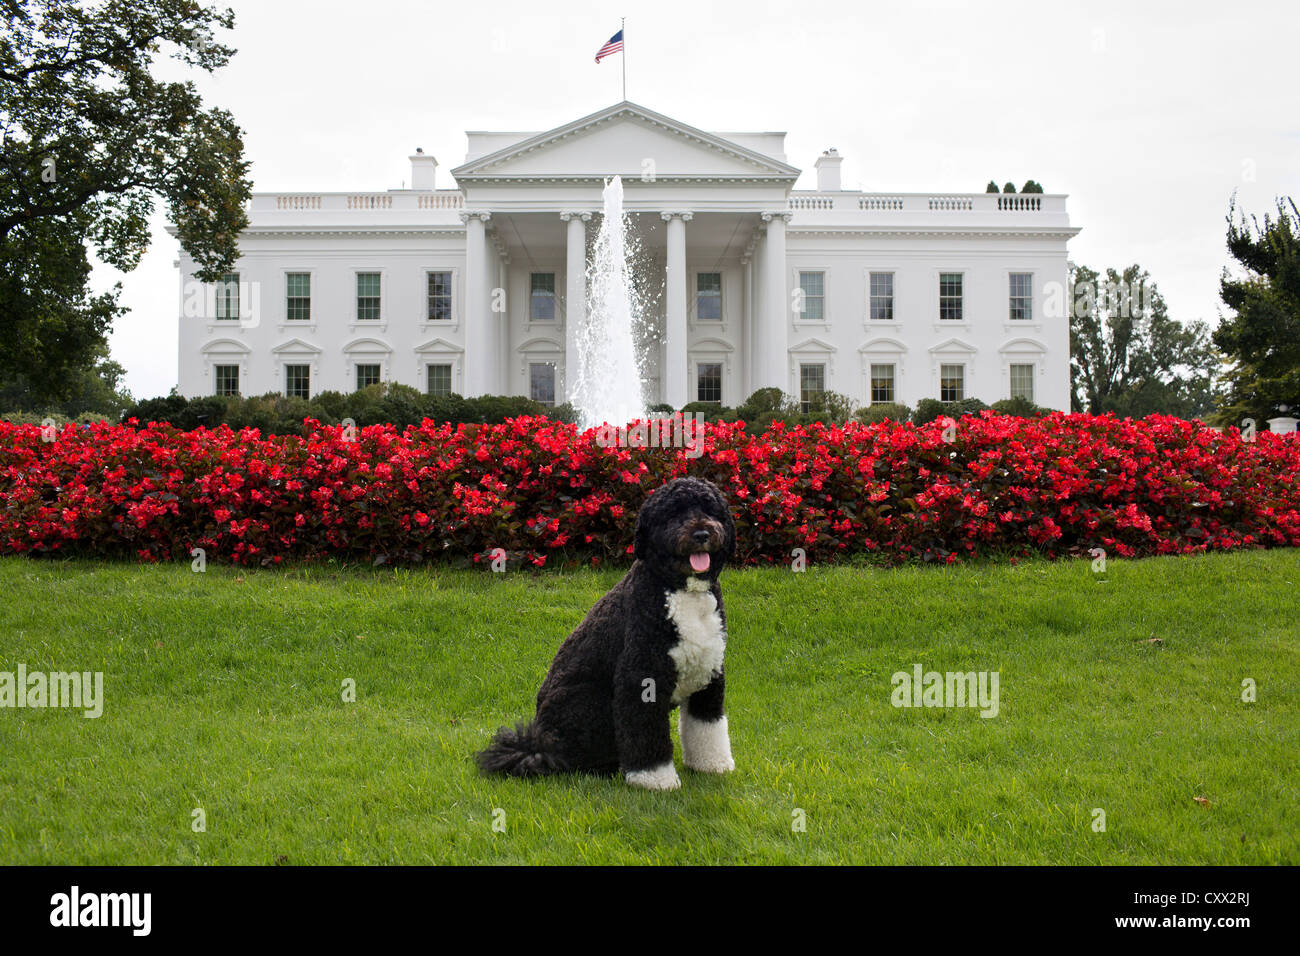 Bo, the Obama family dog poses for a photo September 28, 2012 on the North Lawn of the White House. - Stock Image